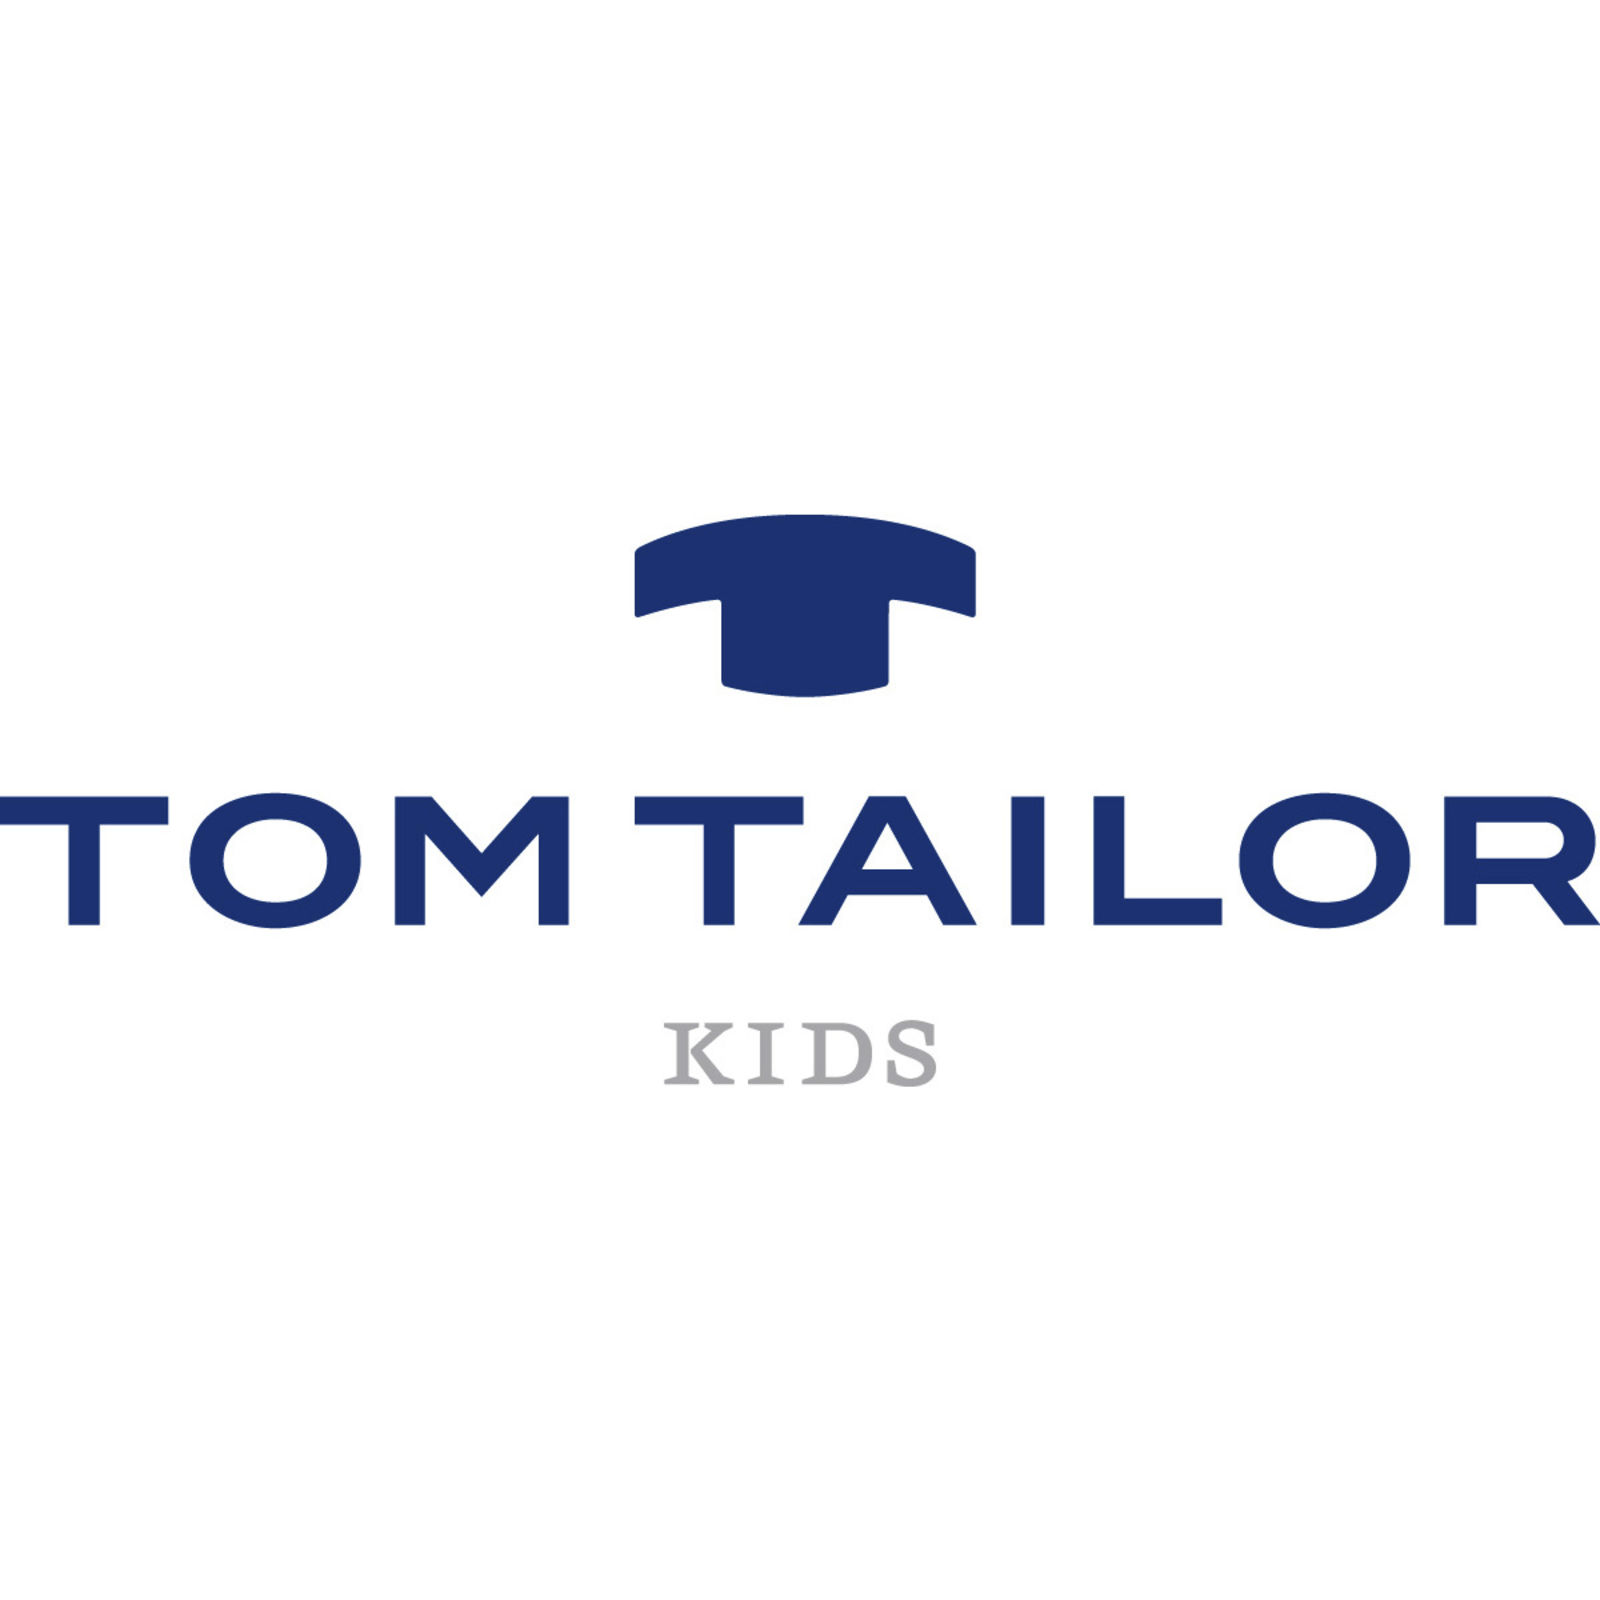 TOM TAILOR Kids (Image 1)